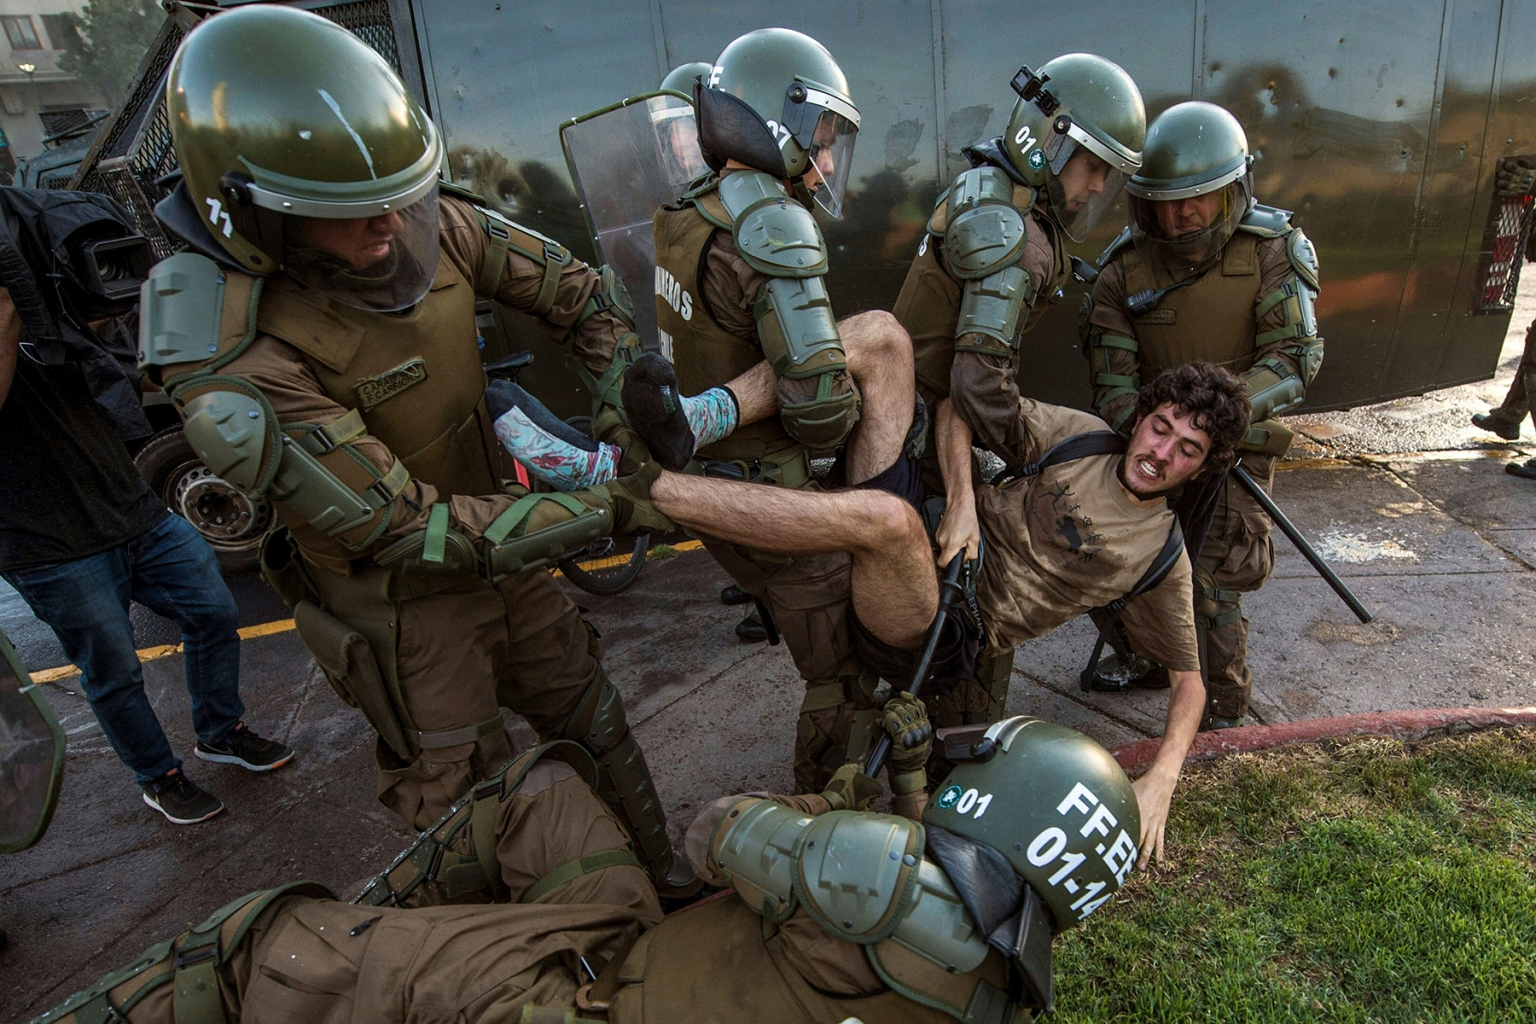 A demonstrator is arrested by riot police during a protest for the death of Mapuche Camilo Catrillanca in Santiago, Chile, on Nov. 15. The 24-year-old Catrillanca was shot and killed during a police operation in an indigenous community in the Araucania region, the center of the Mapuche conflict, according to police reports. MARTIN BERNETTI/AFP/Getty Images